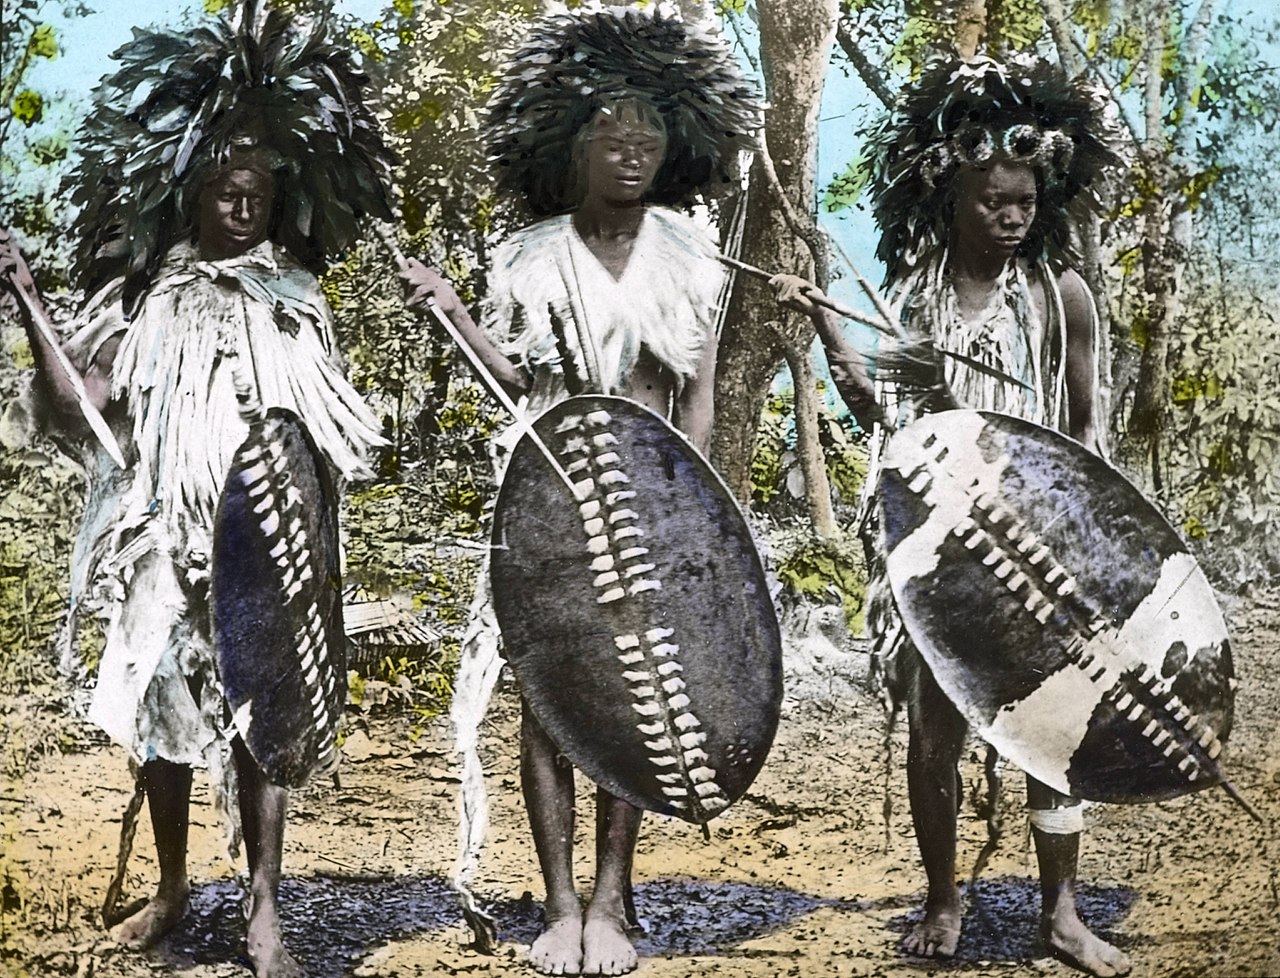 Sifudu the South Africas Xhosa Tribe Way of Cleansing and Purifying New Babies